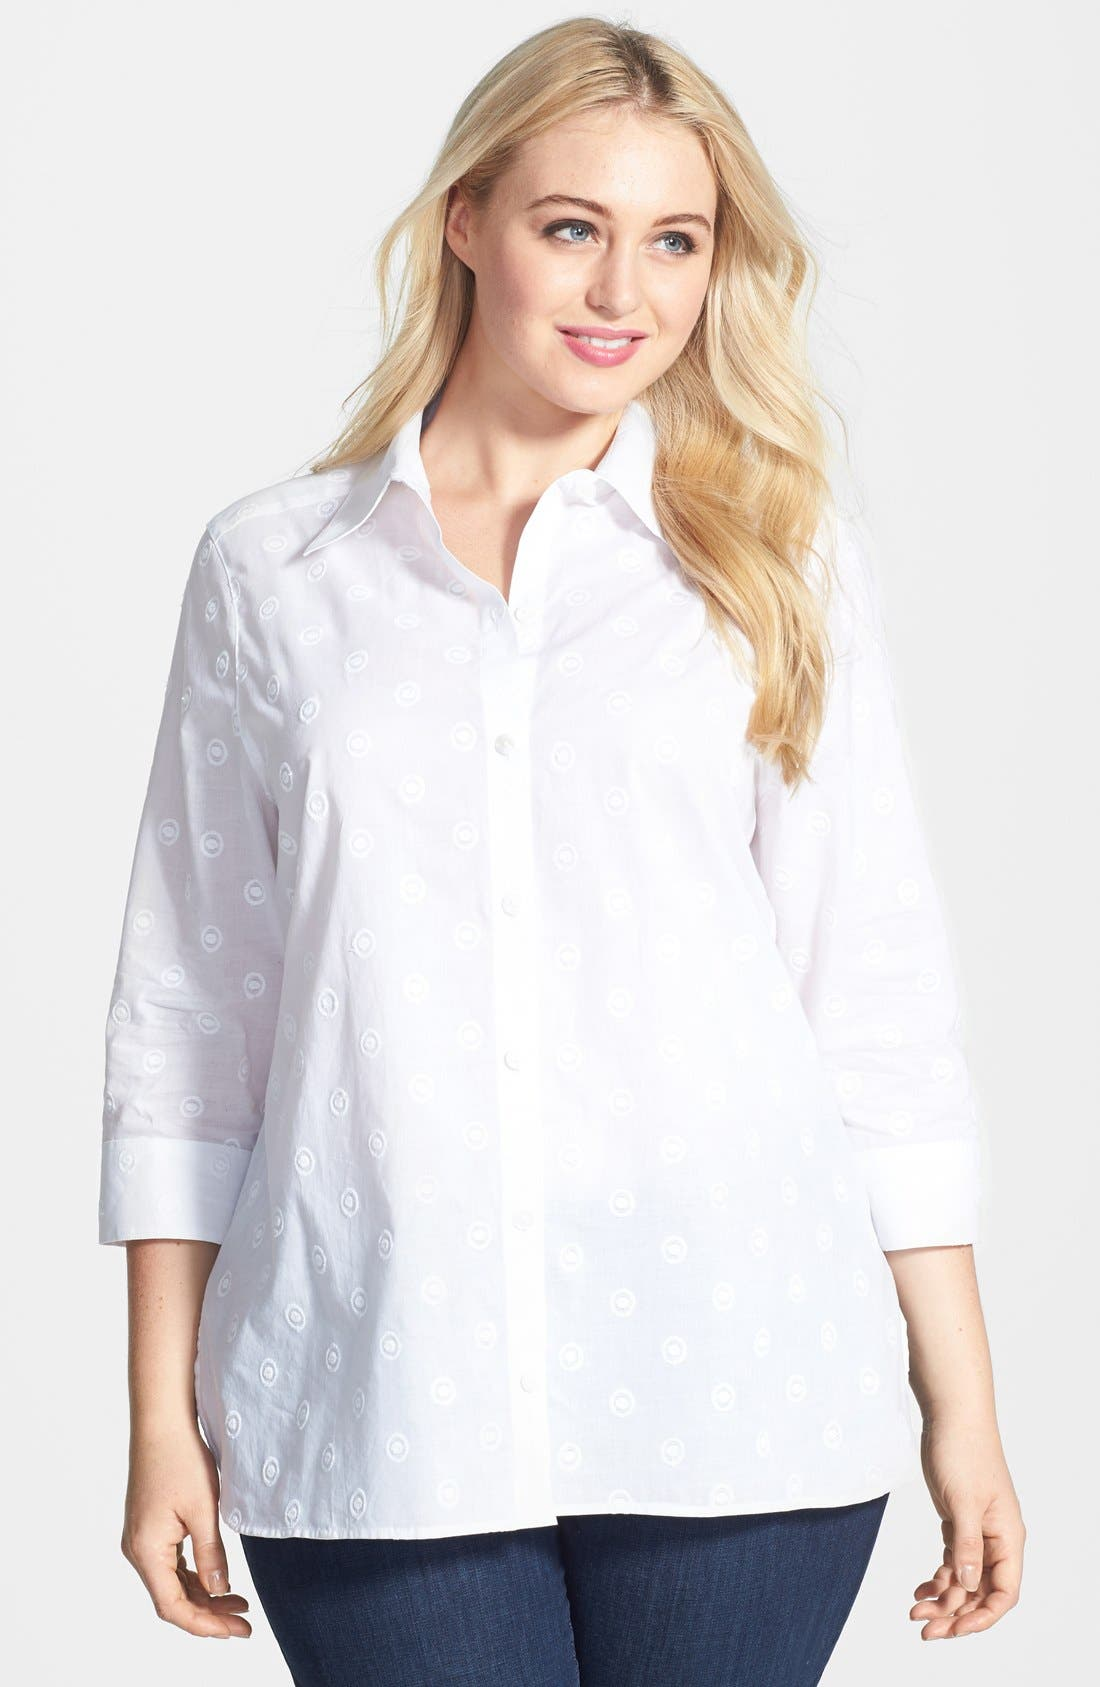 Alternate Image 1 Selected - Foxcroft Embroidered Shaped Cotton Shirt (Plus Size)